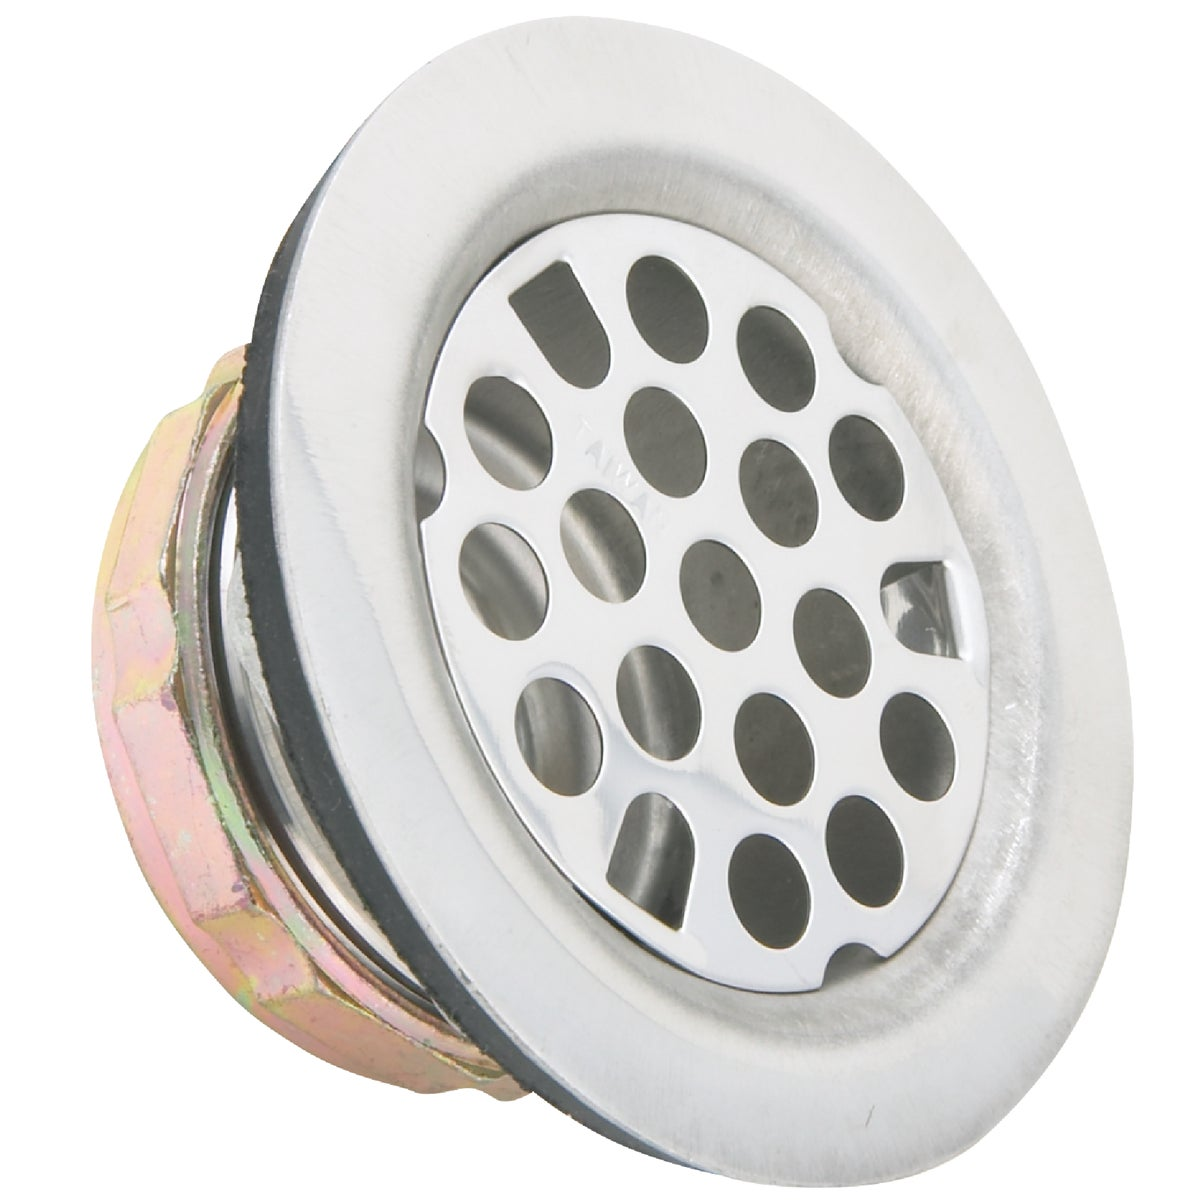 Do it Sink Strainer Assembly, 489956